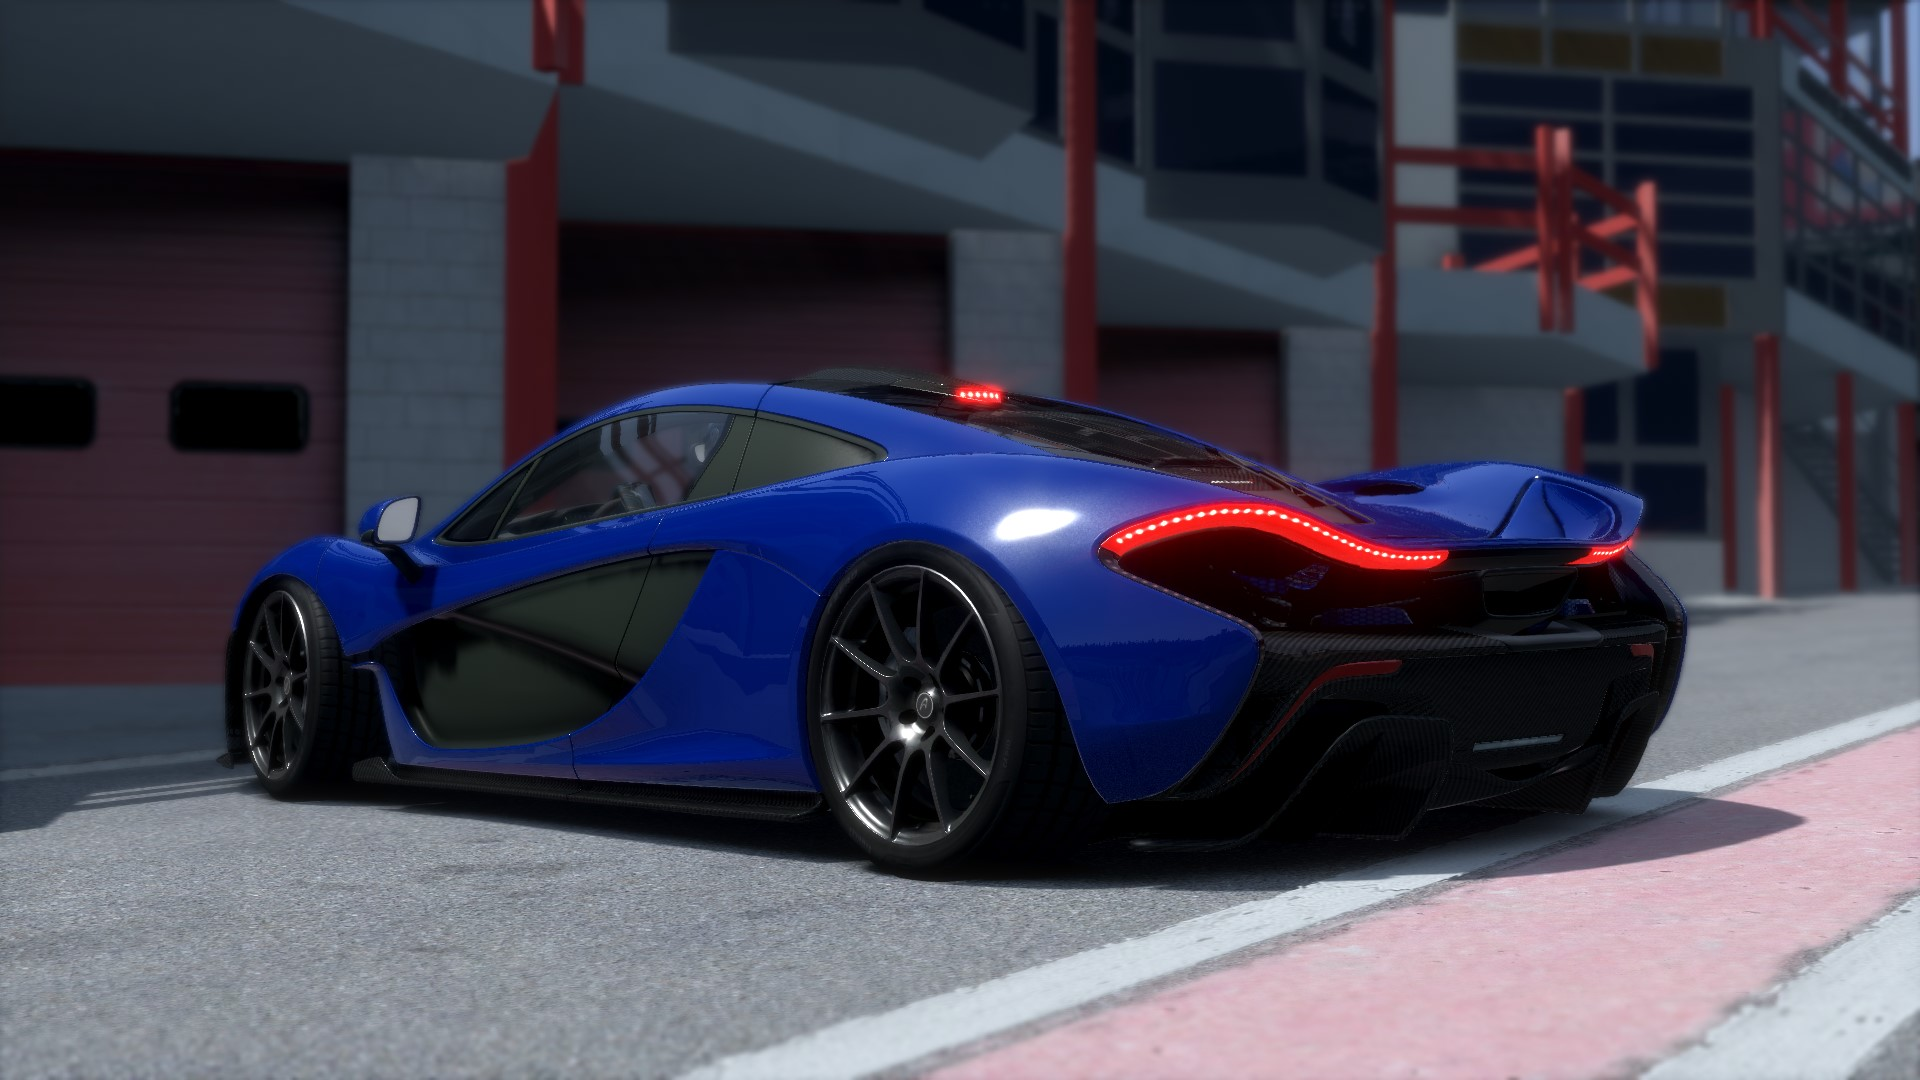 Screenshot_ks_mclaren_p1_spa_11-8-115-5-47-45.jpg